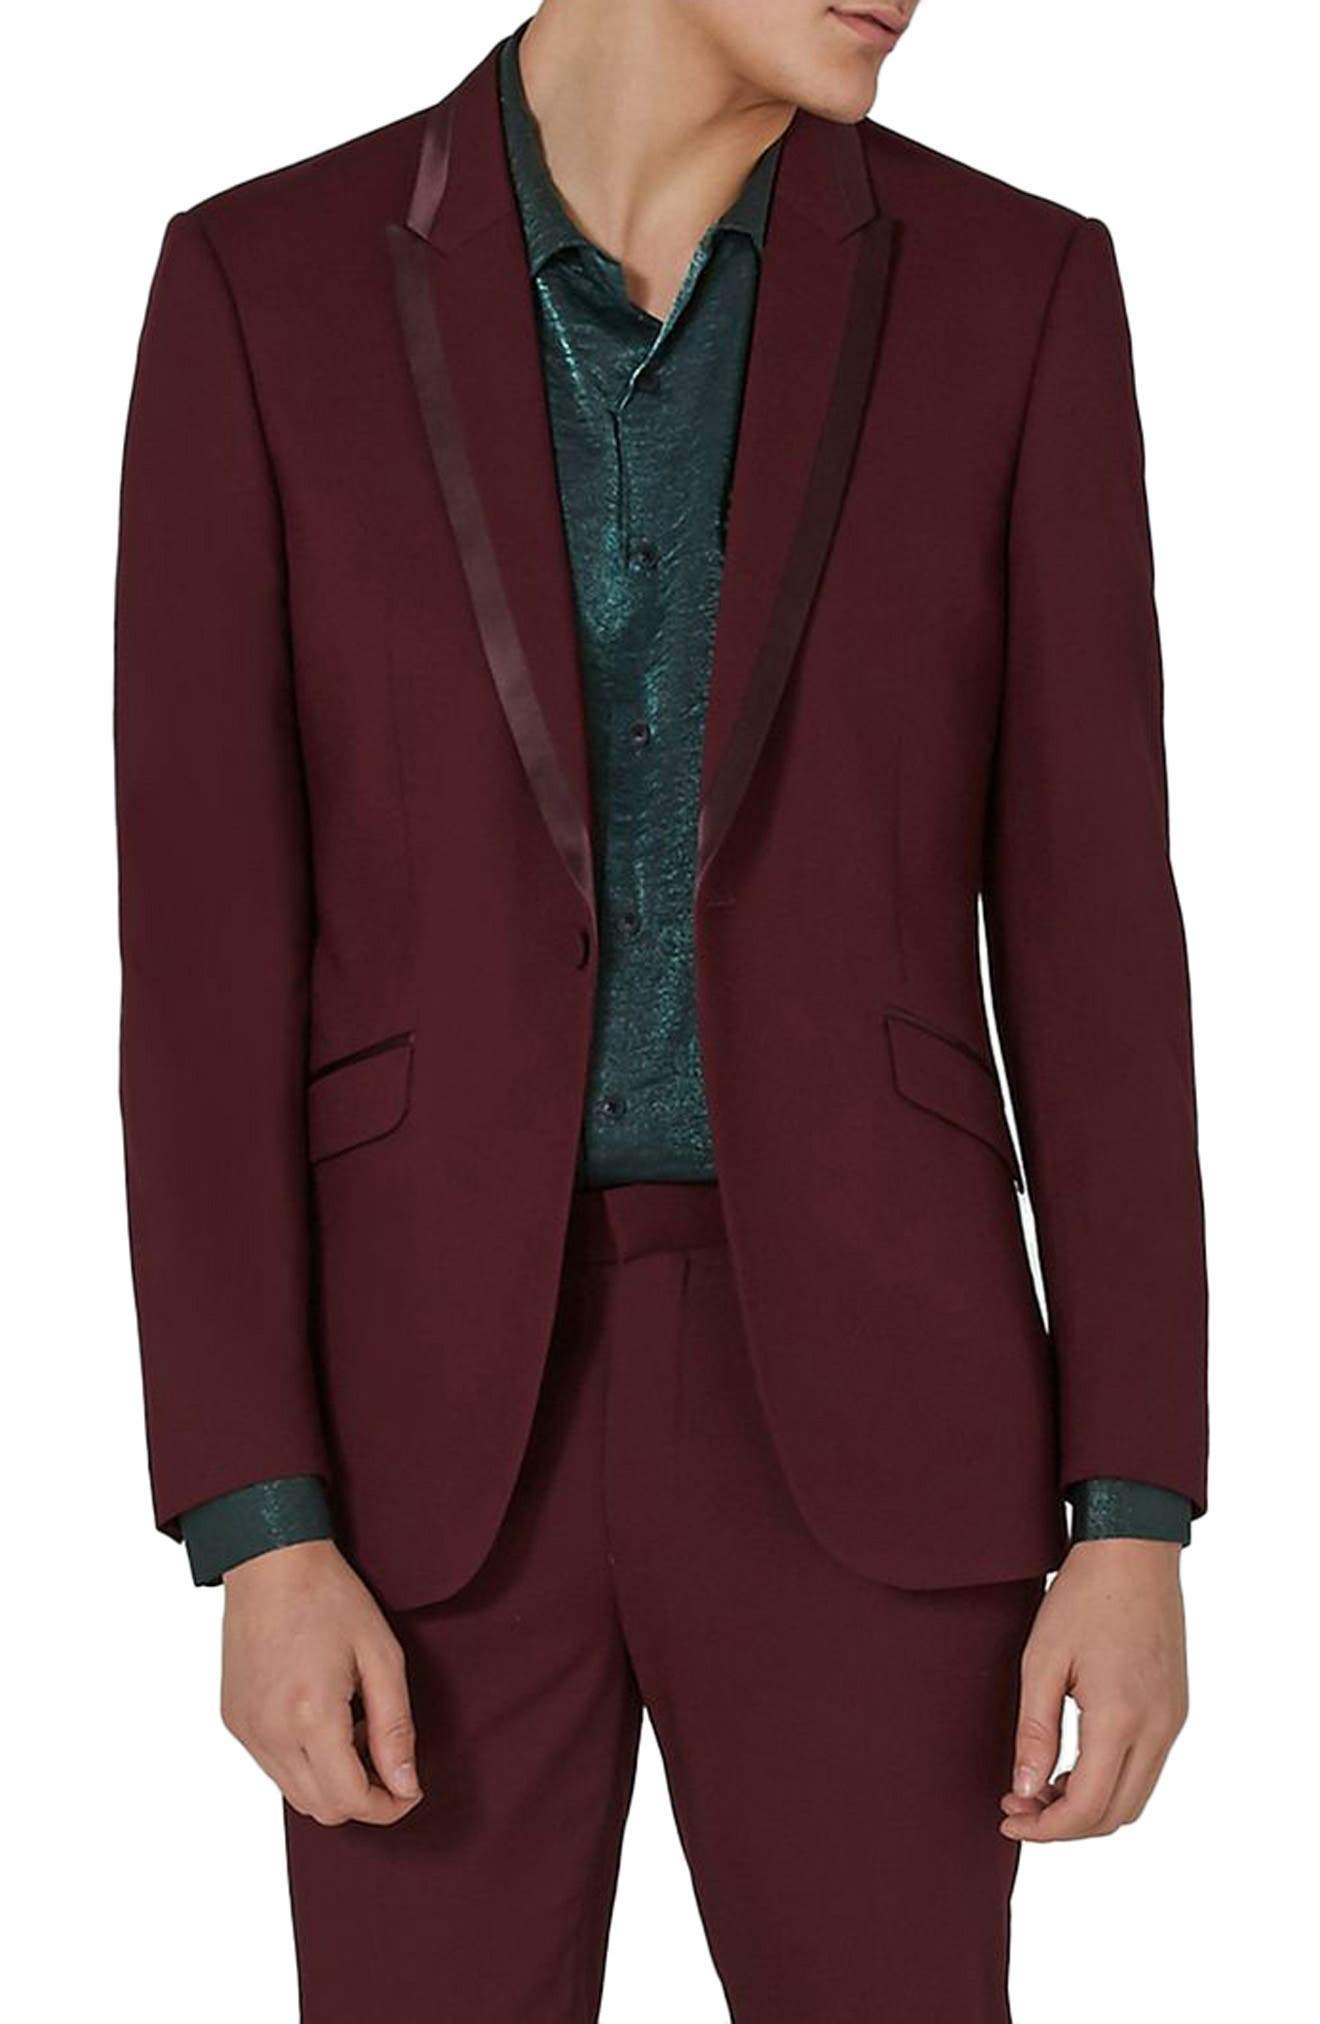 Skinny Fit Burgundy Tuxedo Jacket,                         Main,                         color,